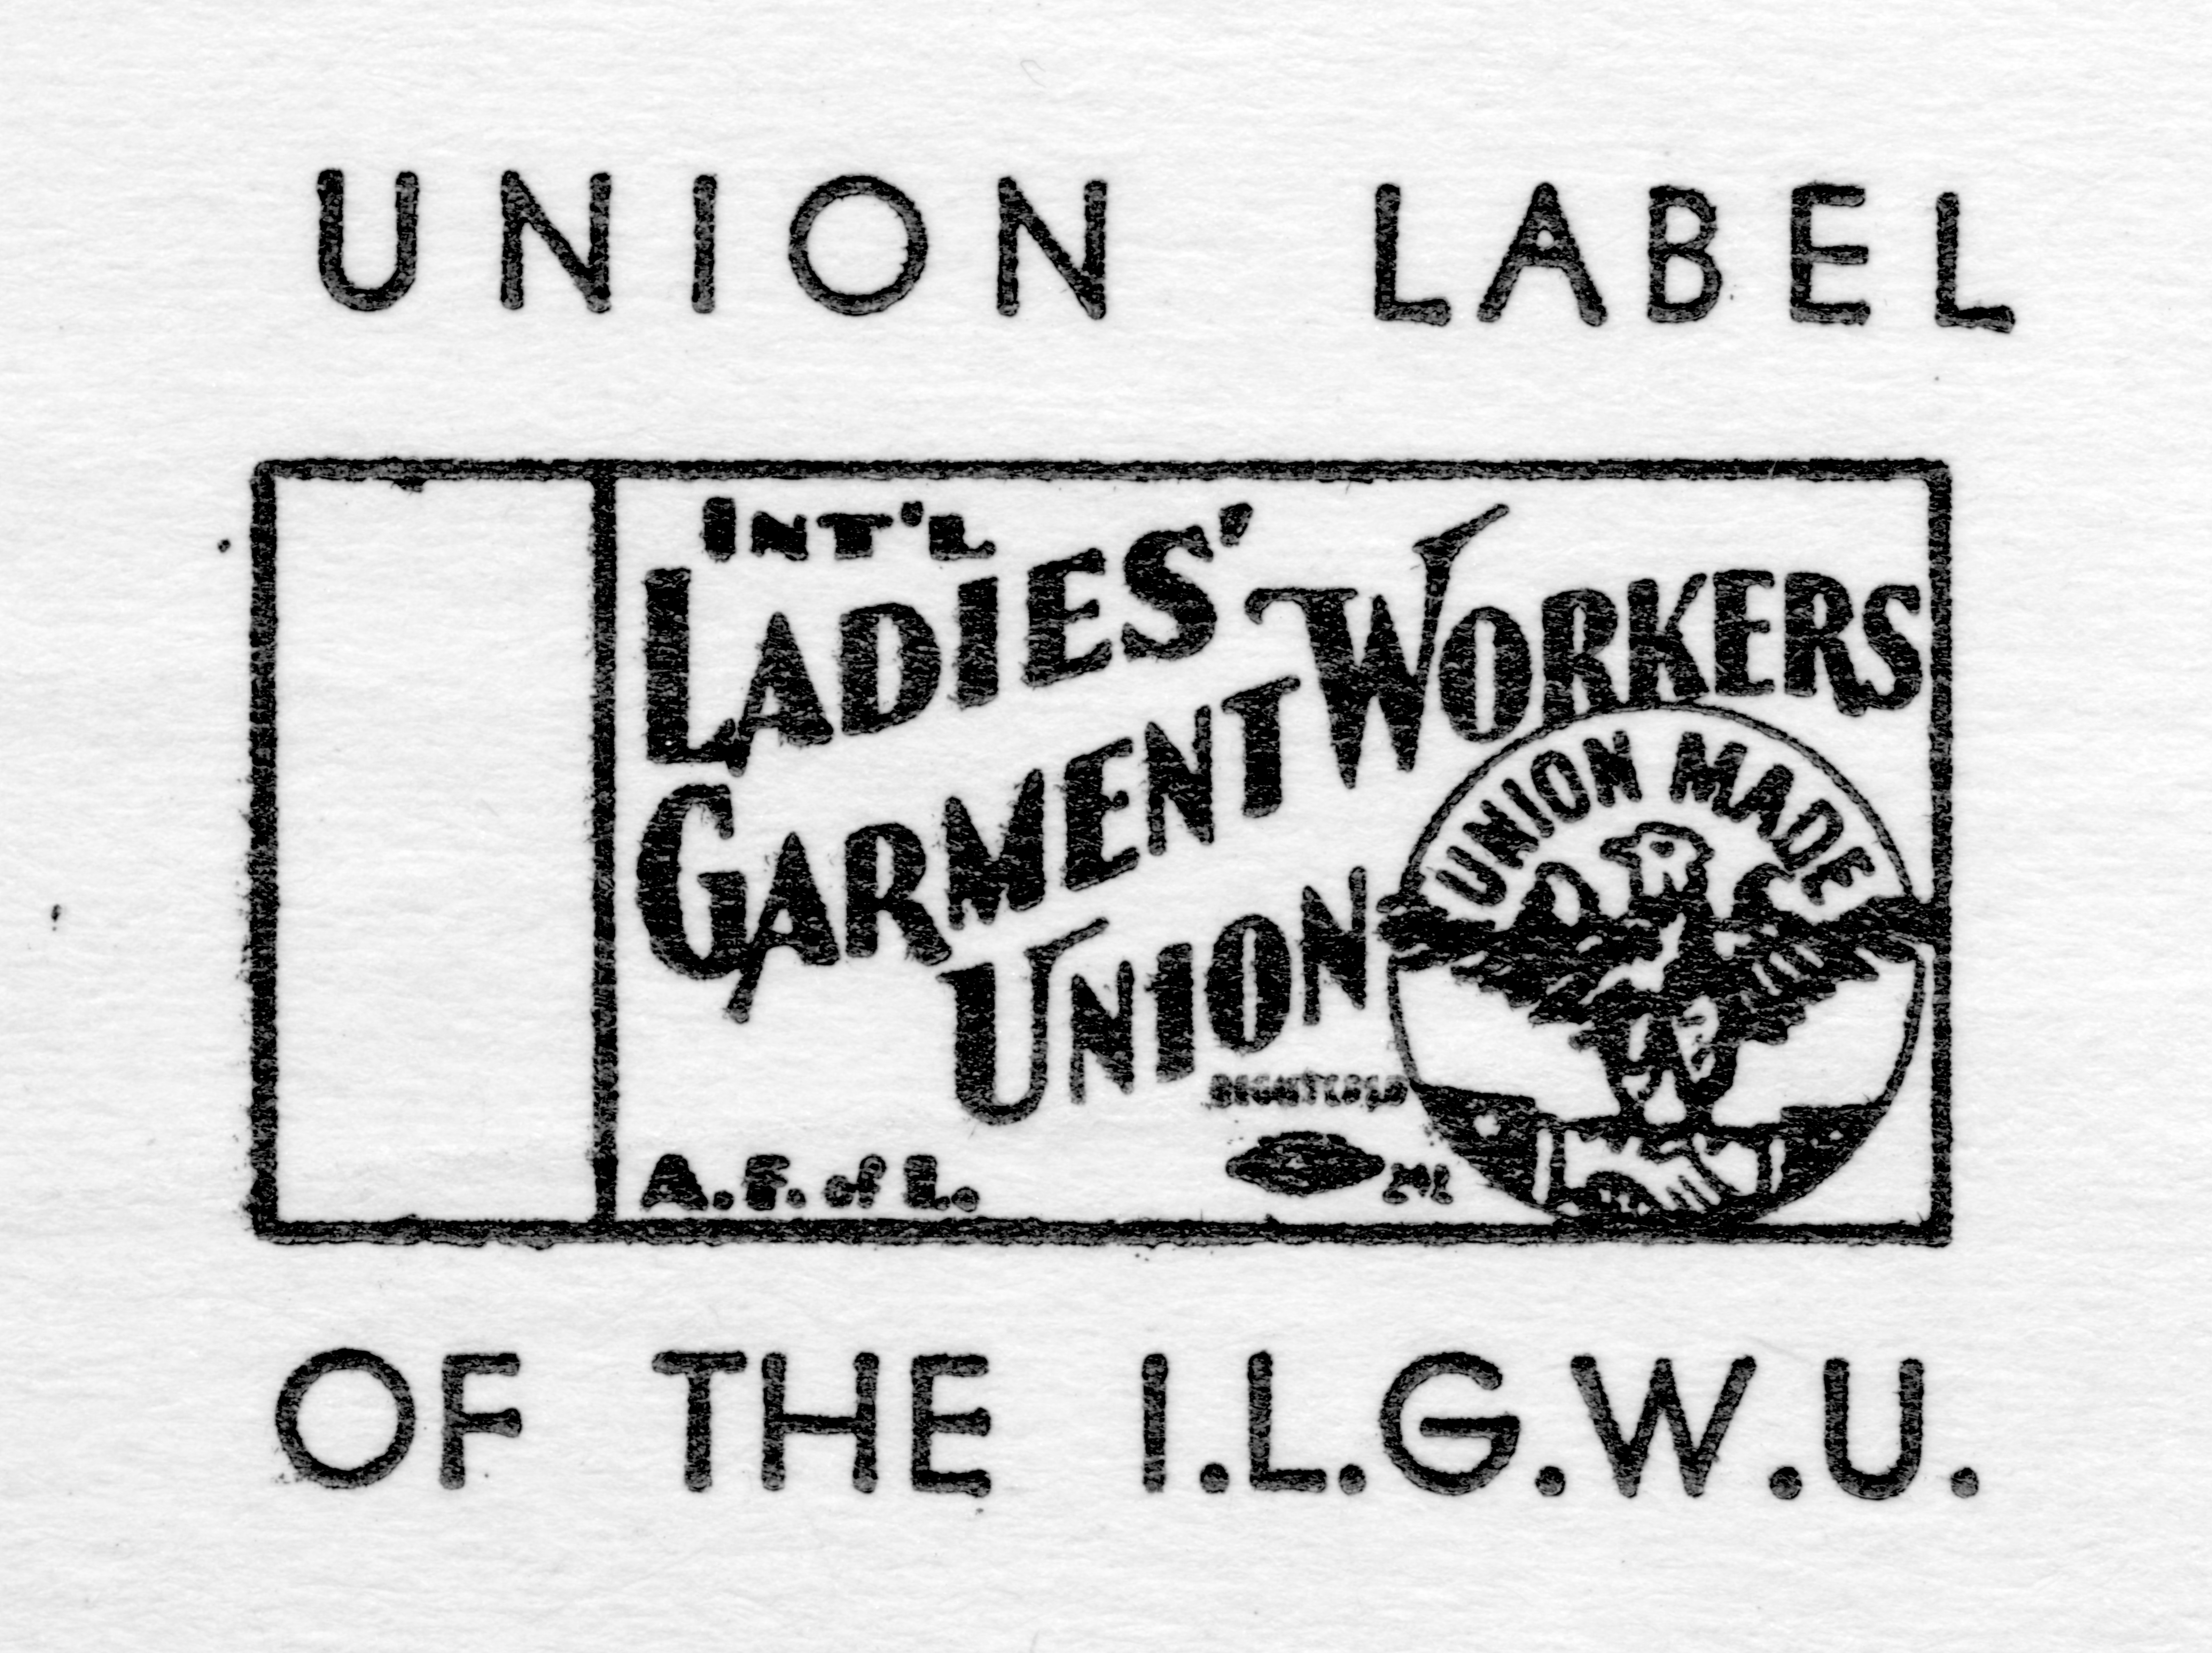 Dating union clothing labels